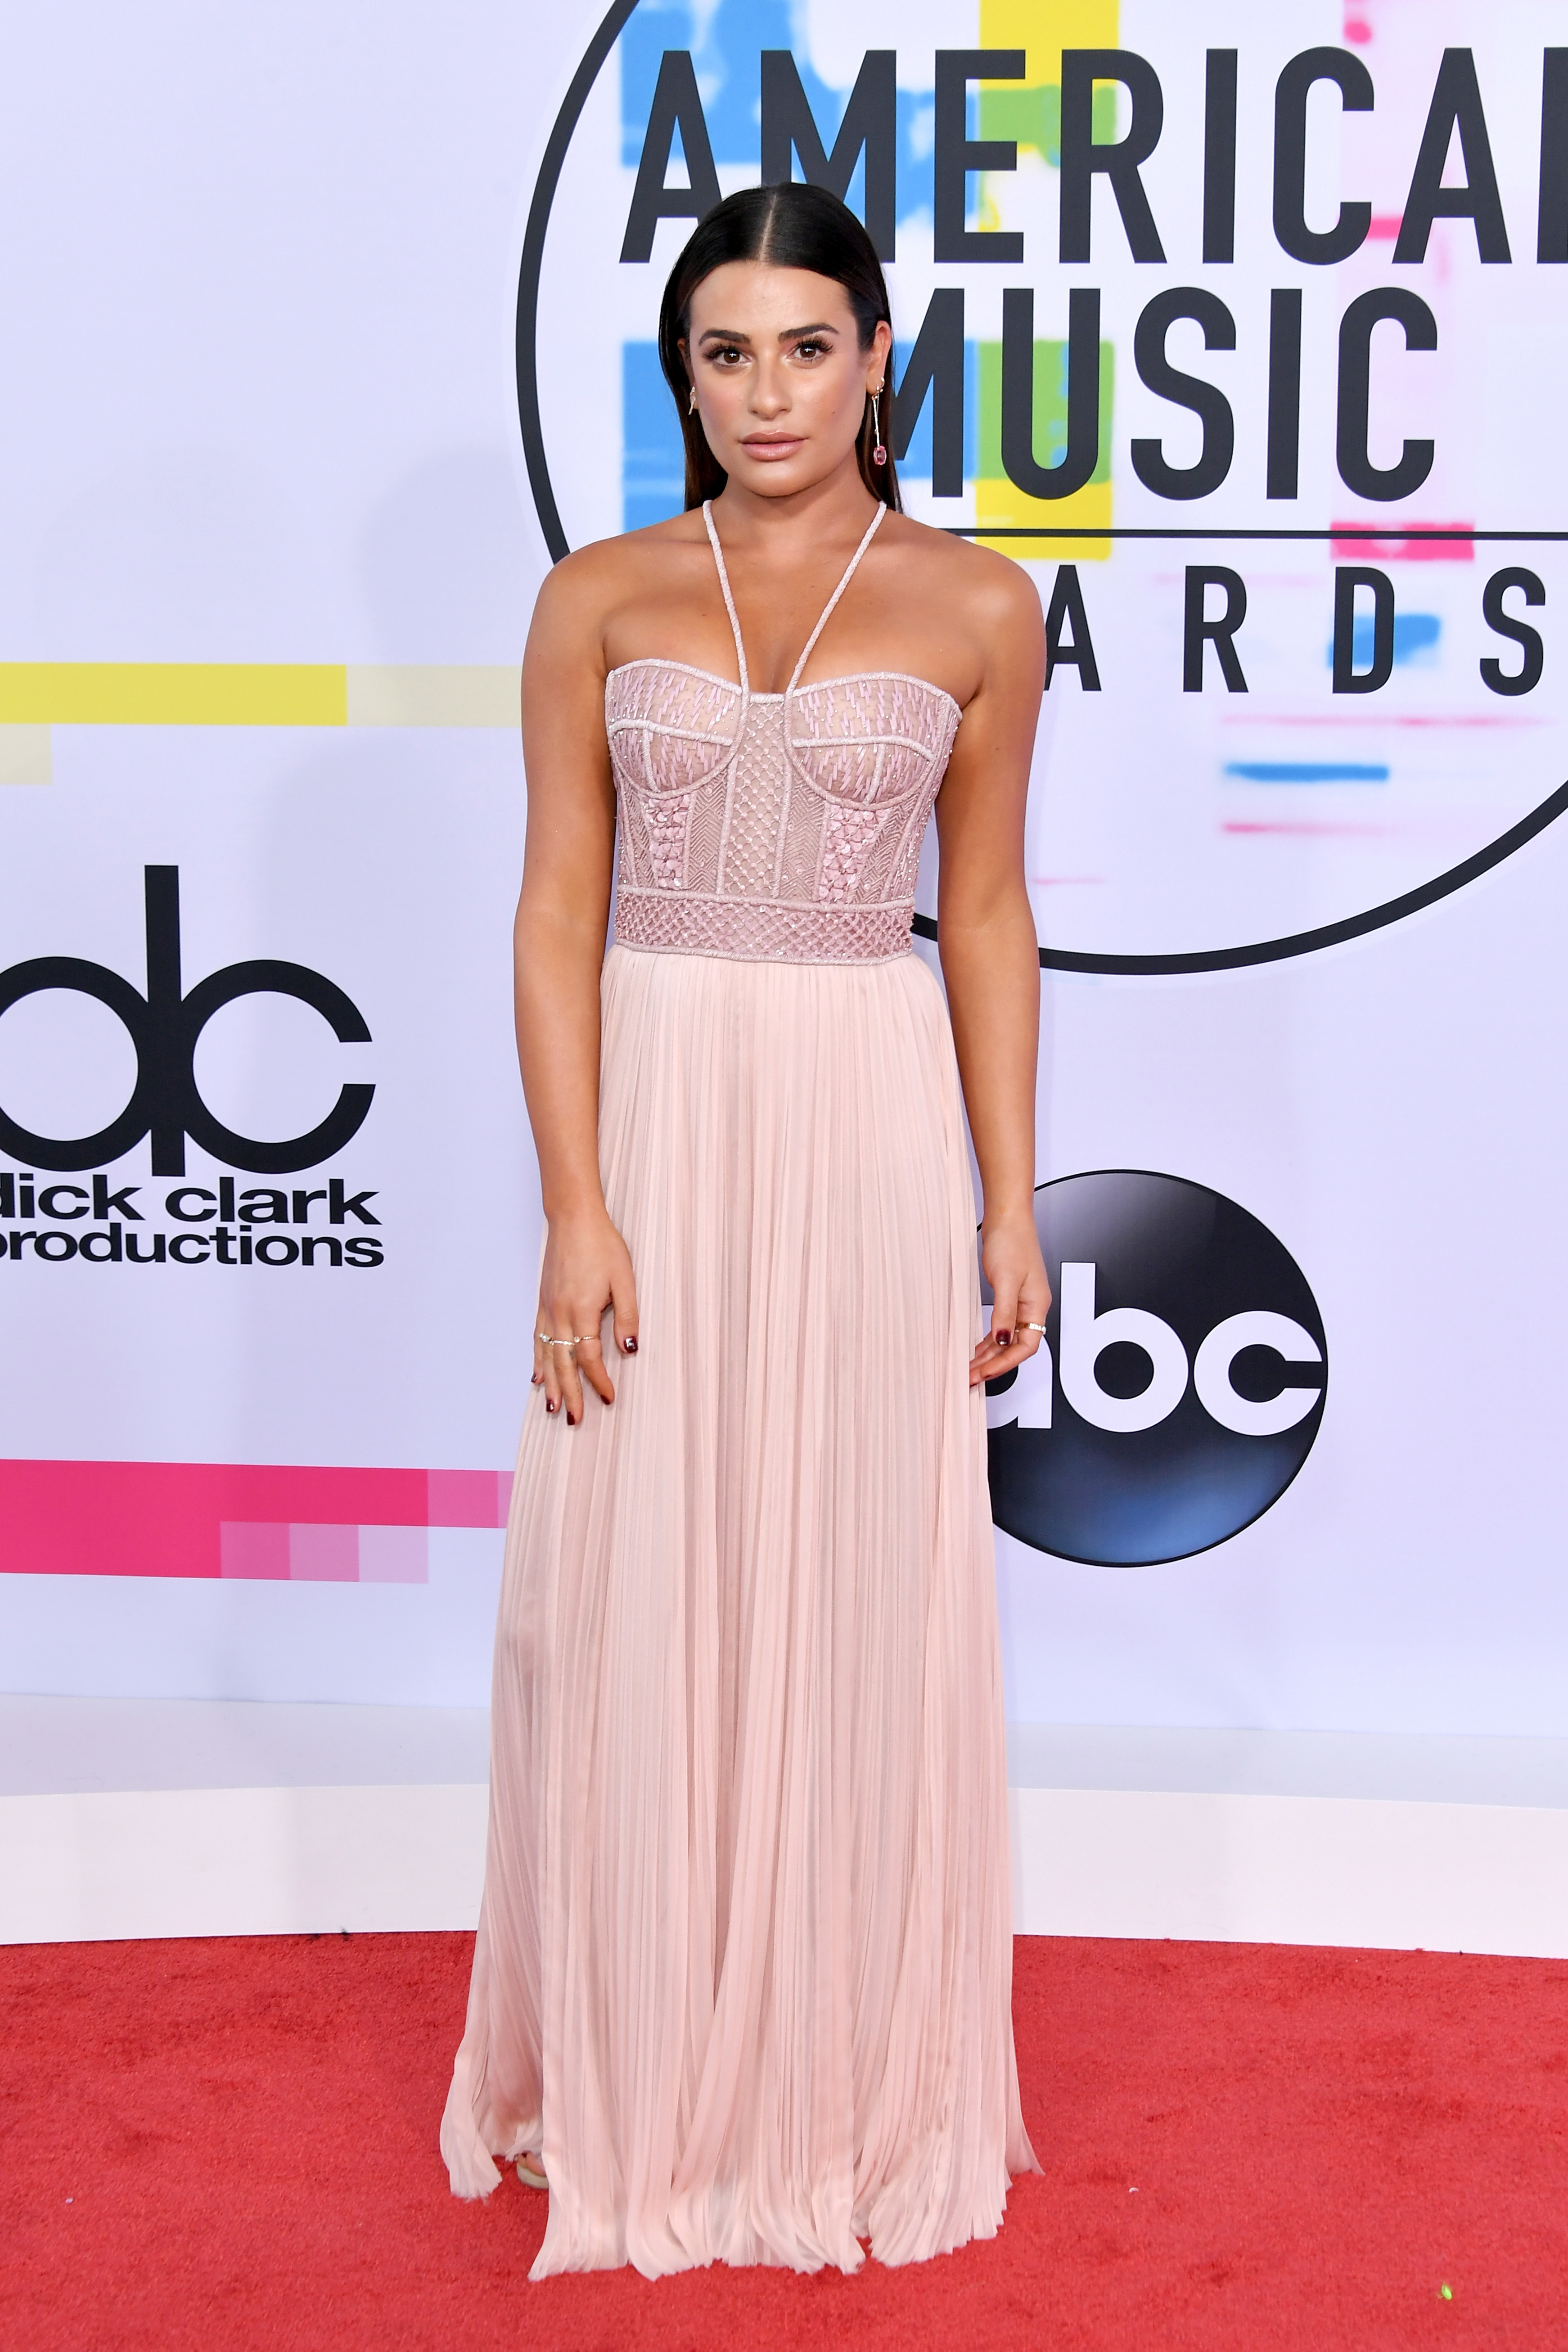 Lea Michele attends the American Music Awards at the Microsoft Theater in Los Angeles on Nov. 19, 2017.